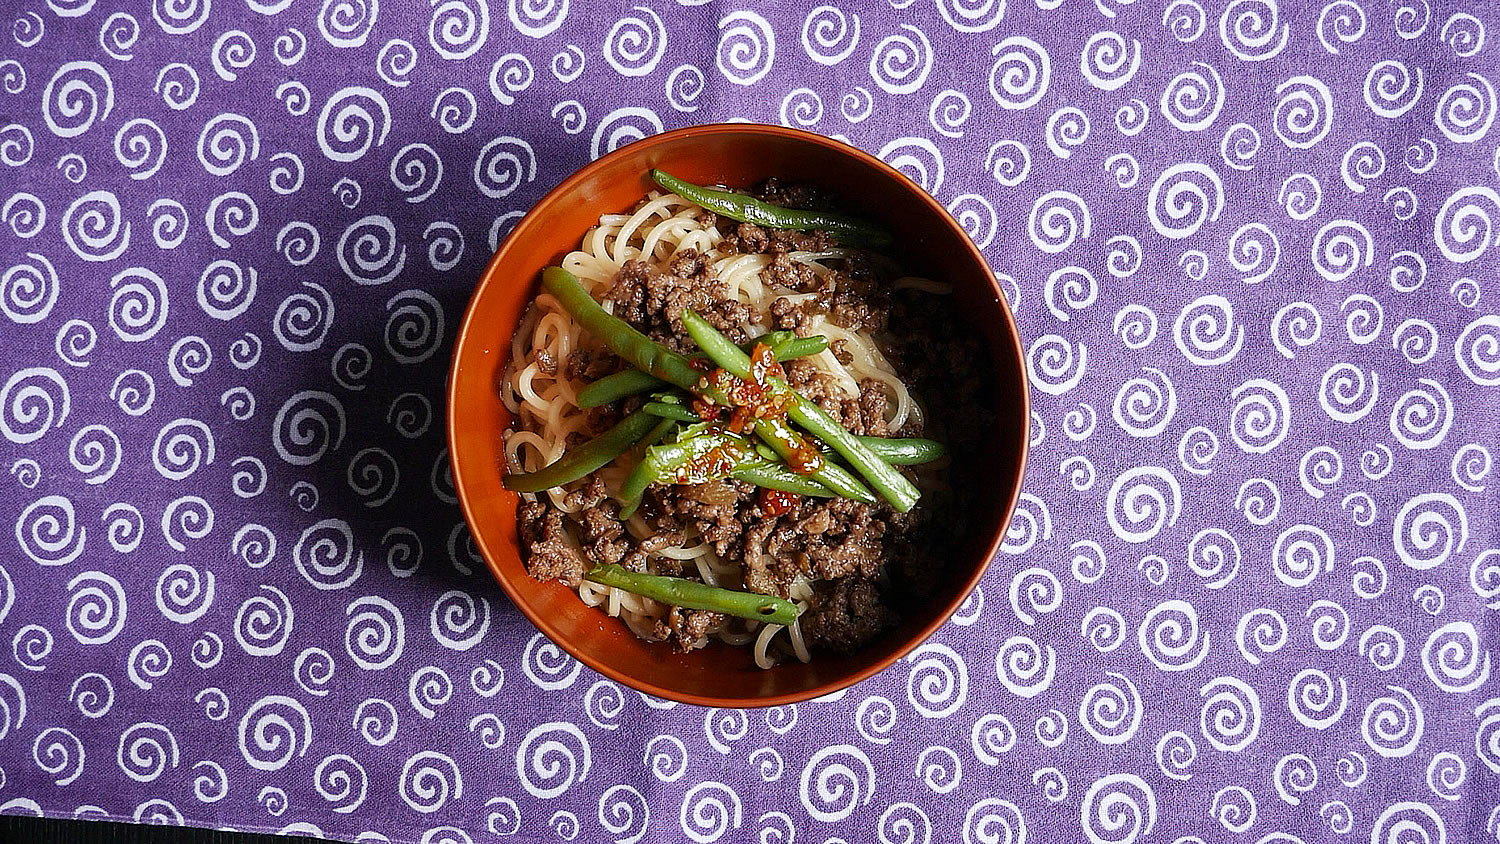 Spicy sichuan noodles without soup